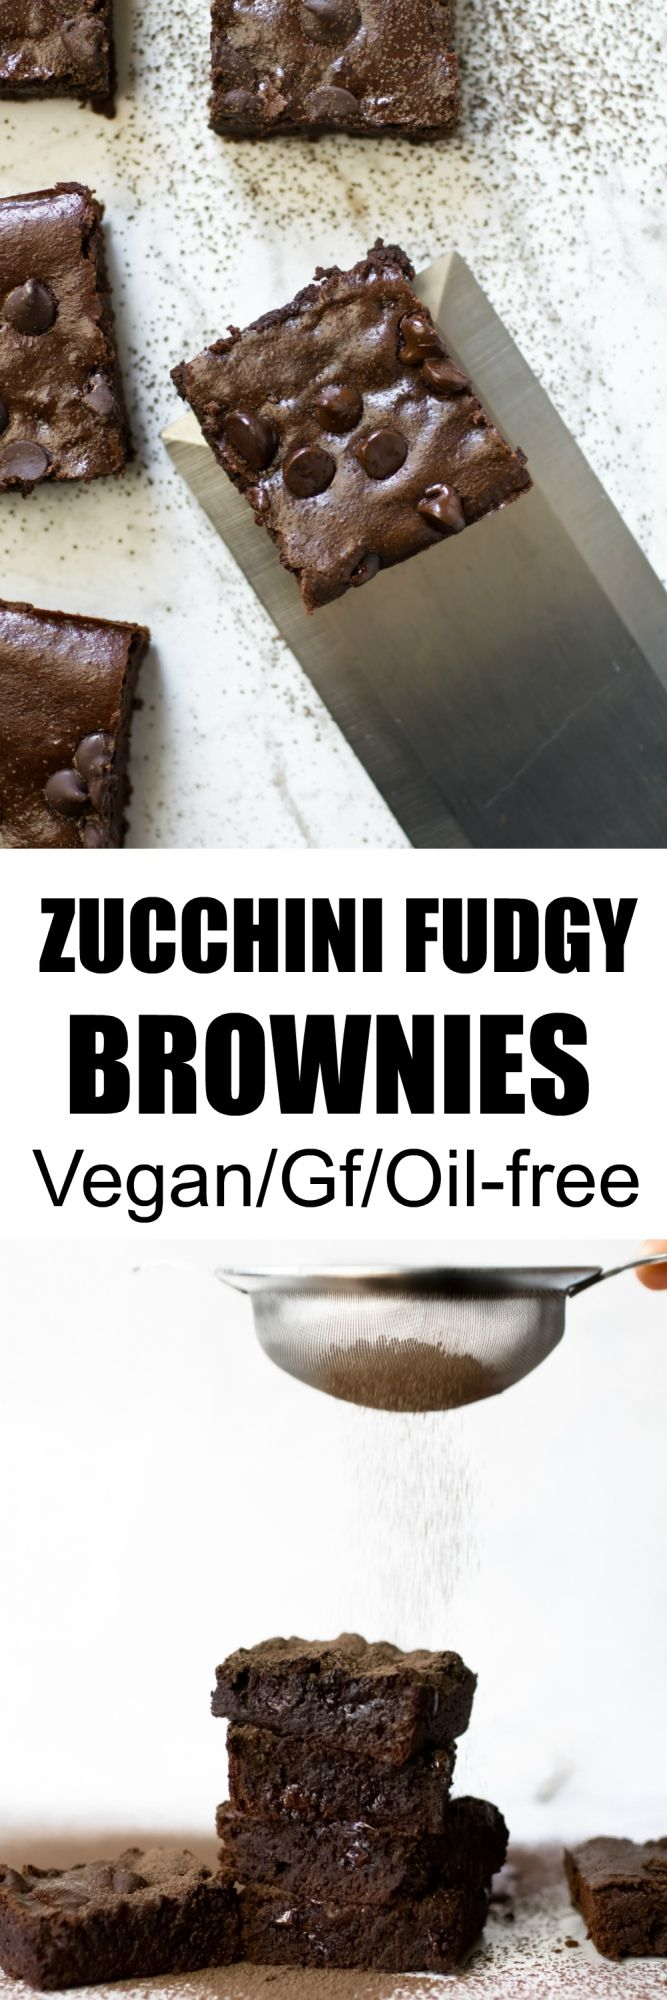 Vegan Zucchini Fudgy Brownies